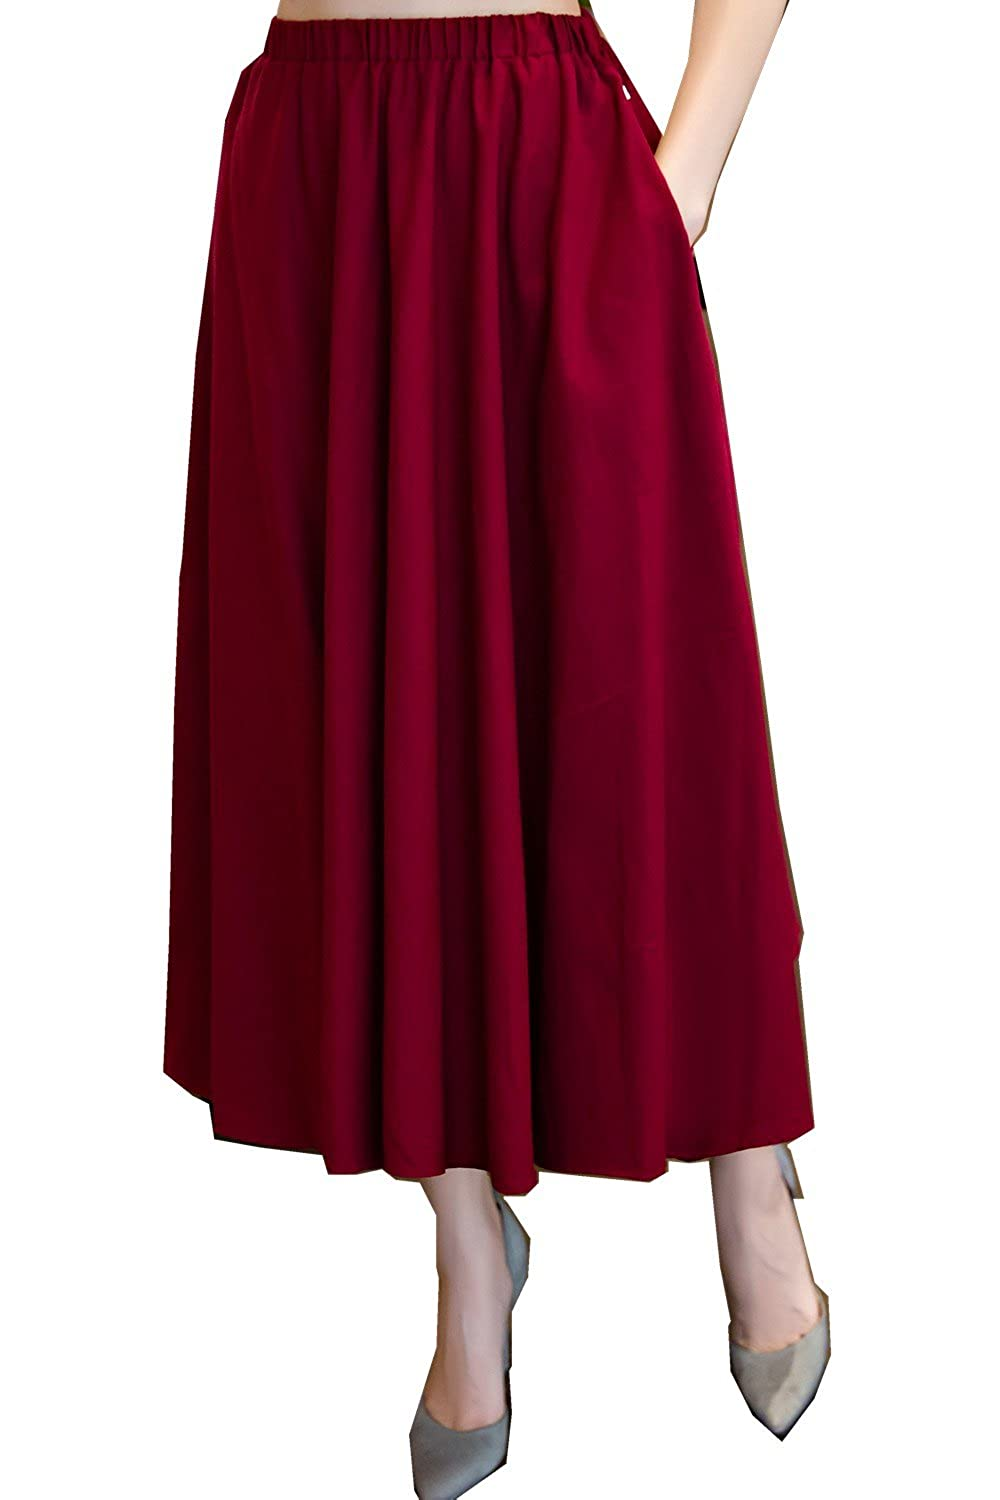 b9eeb83dce Shanghai Story Long Skirt Spring Casual Solid Chinese Style Bohemian Skirts  at Amazon Women's Clothing store: